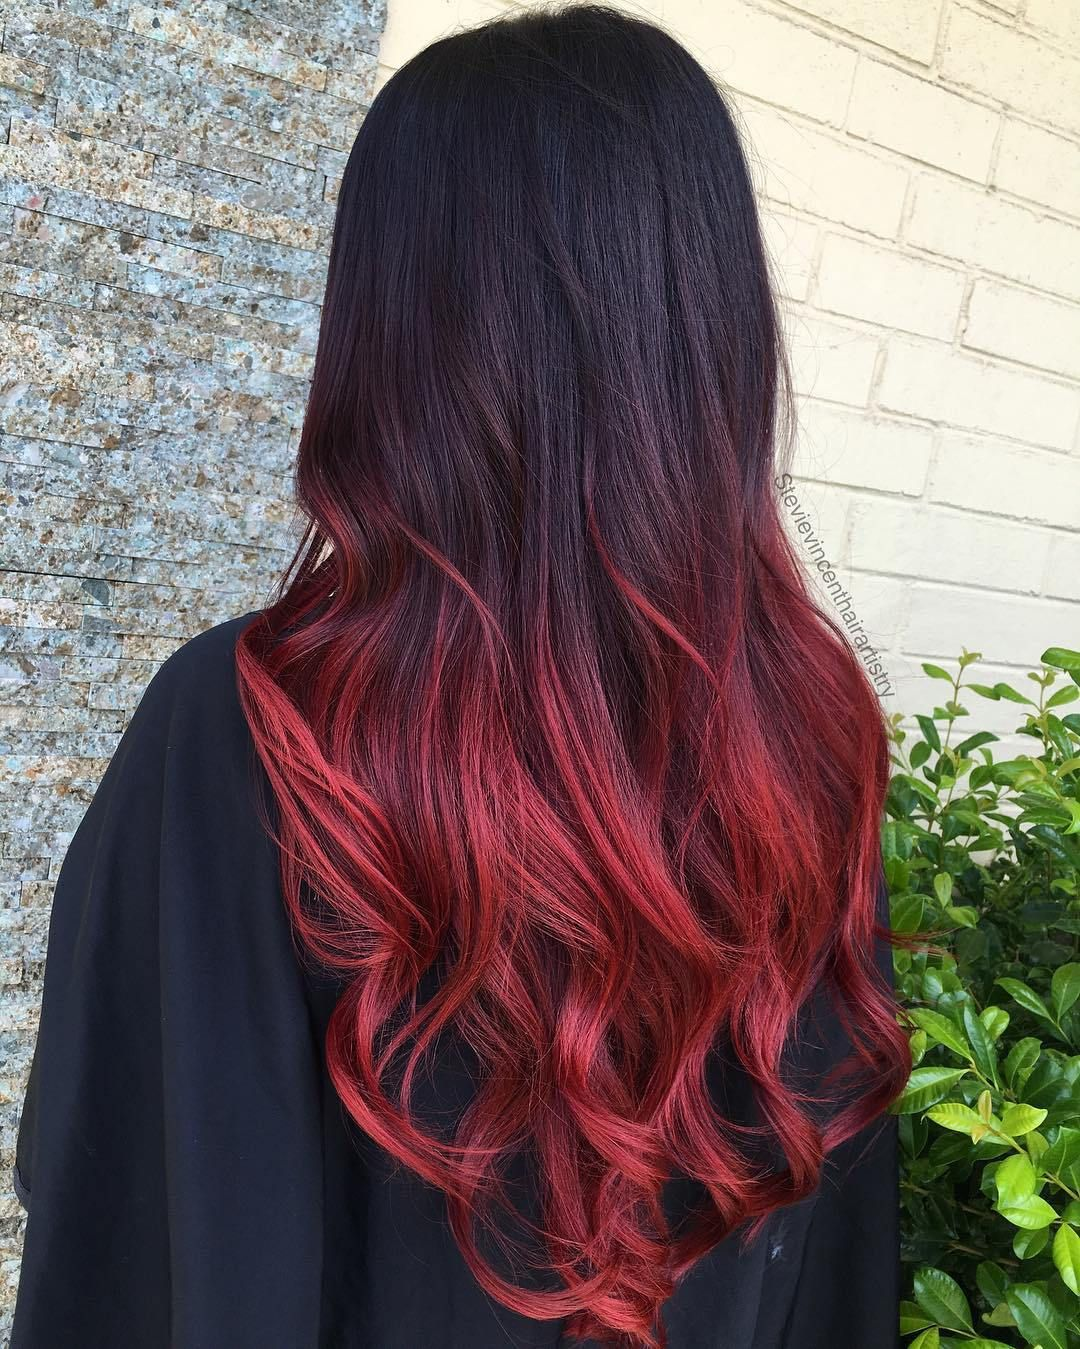 60 Awesome Red Hair Color Ideas 1 In 2020 Red Hair Color Hair Color For Black Hair Black Red Hair